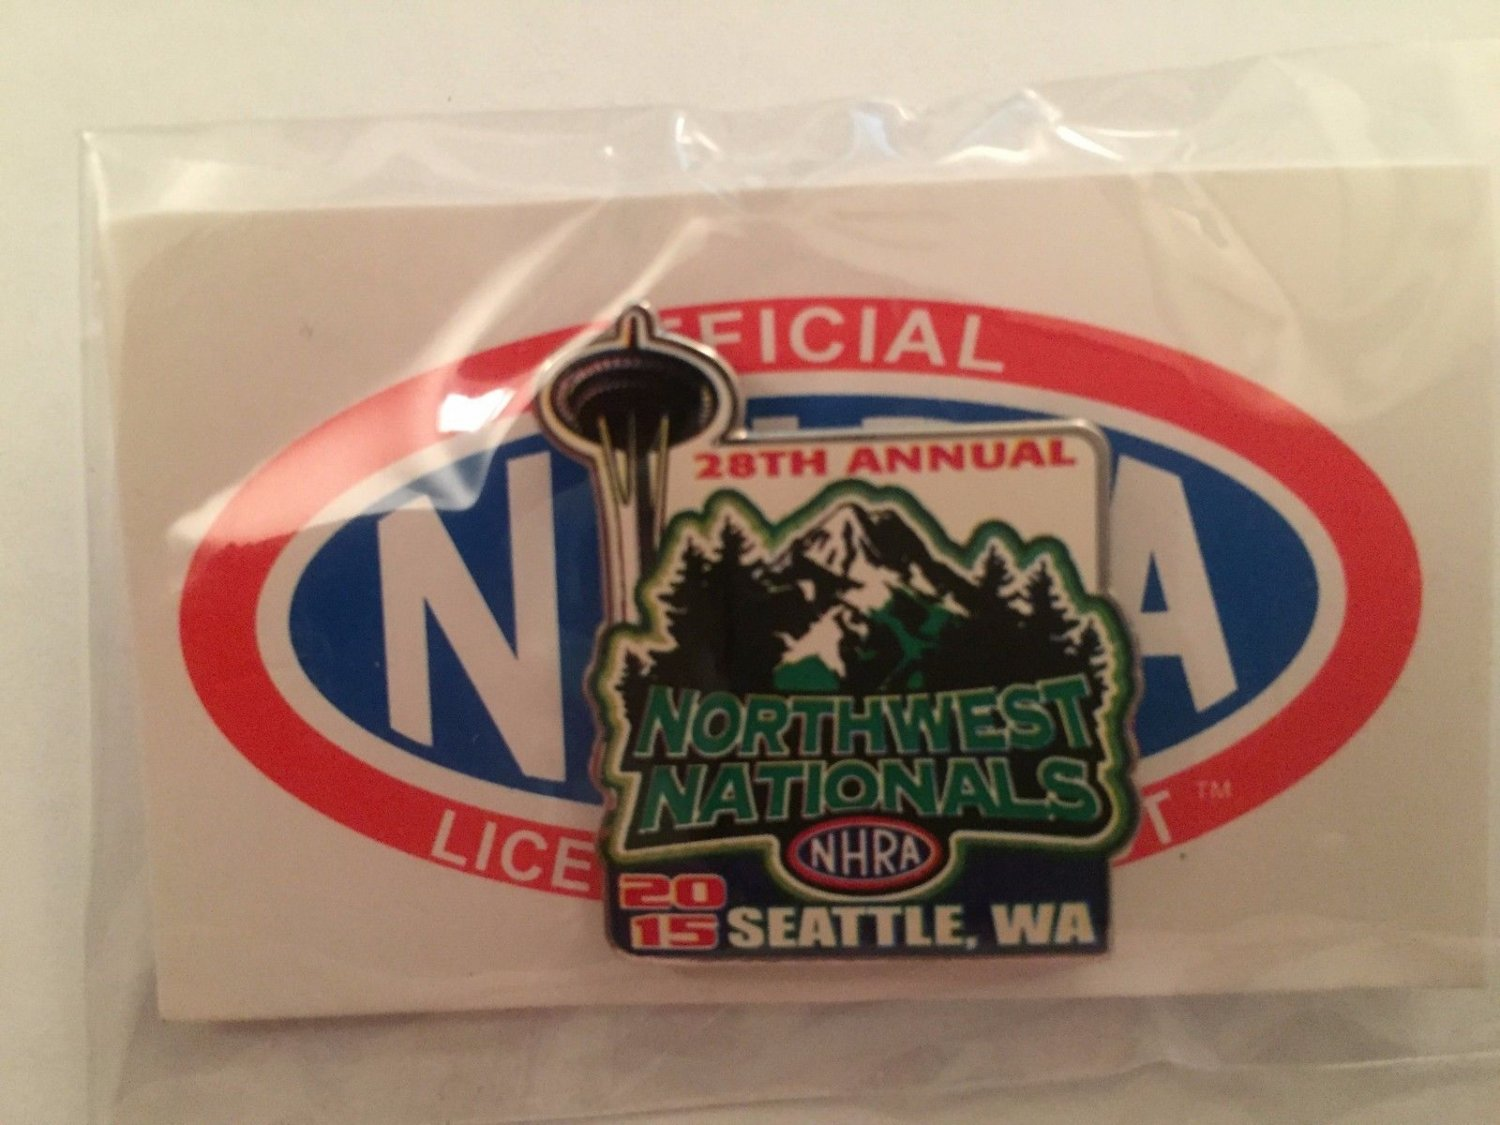 2015 NHRA Event Pin Seattle